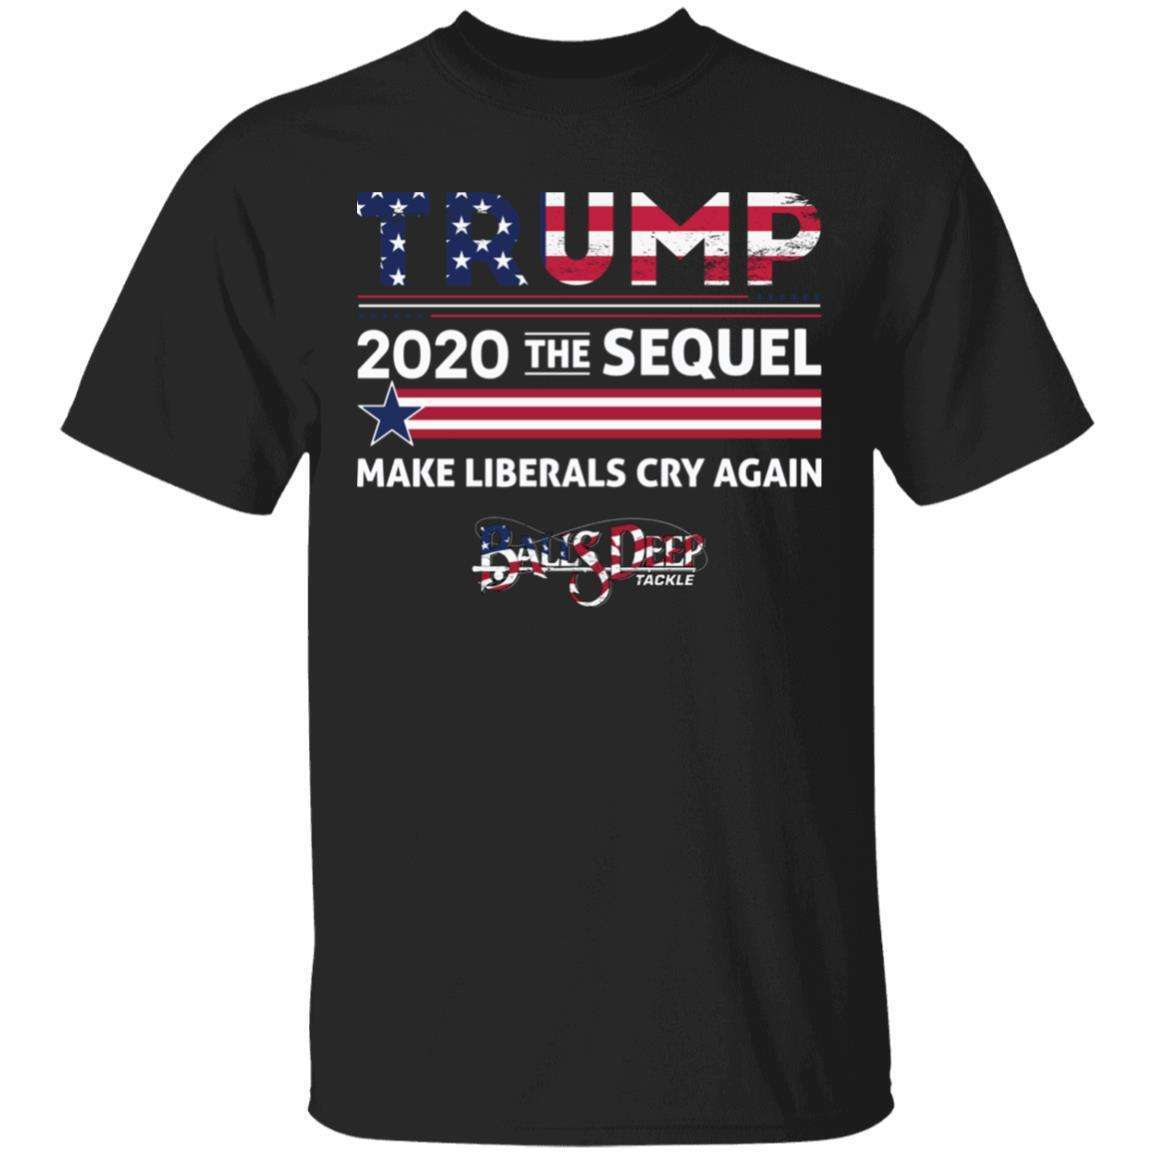 Trump 2020 - Make Liberals Cry Again